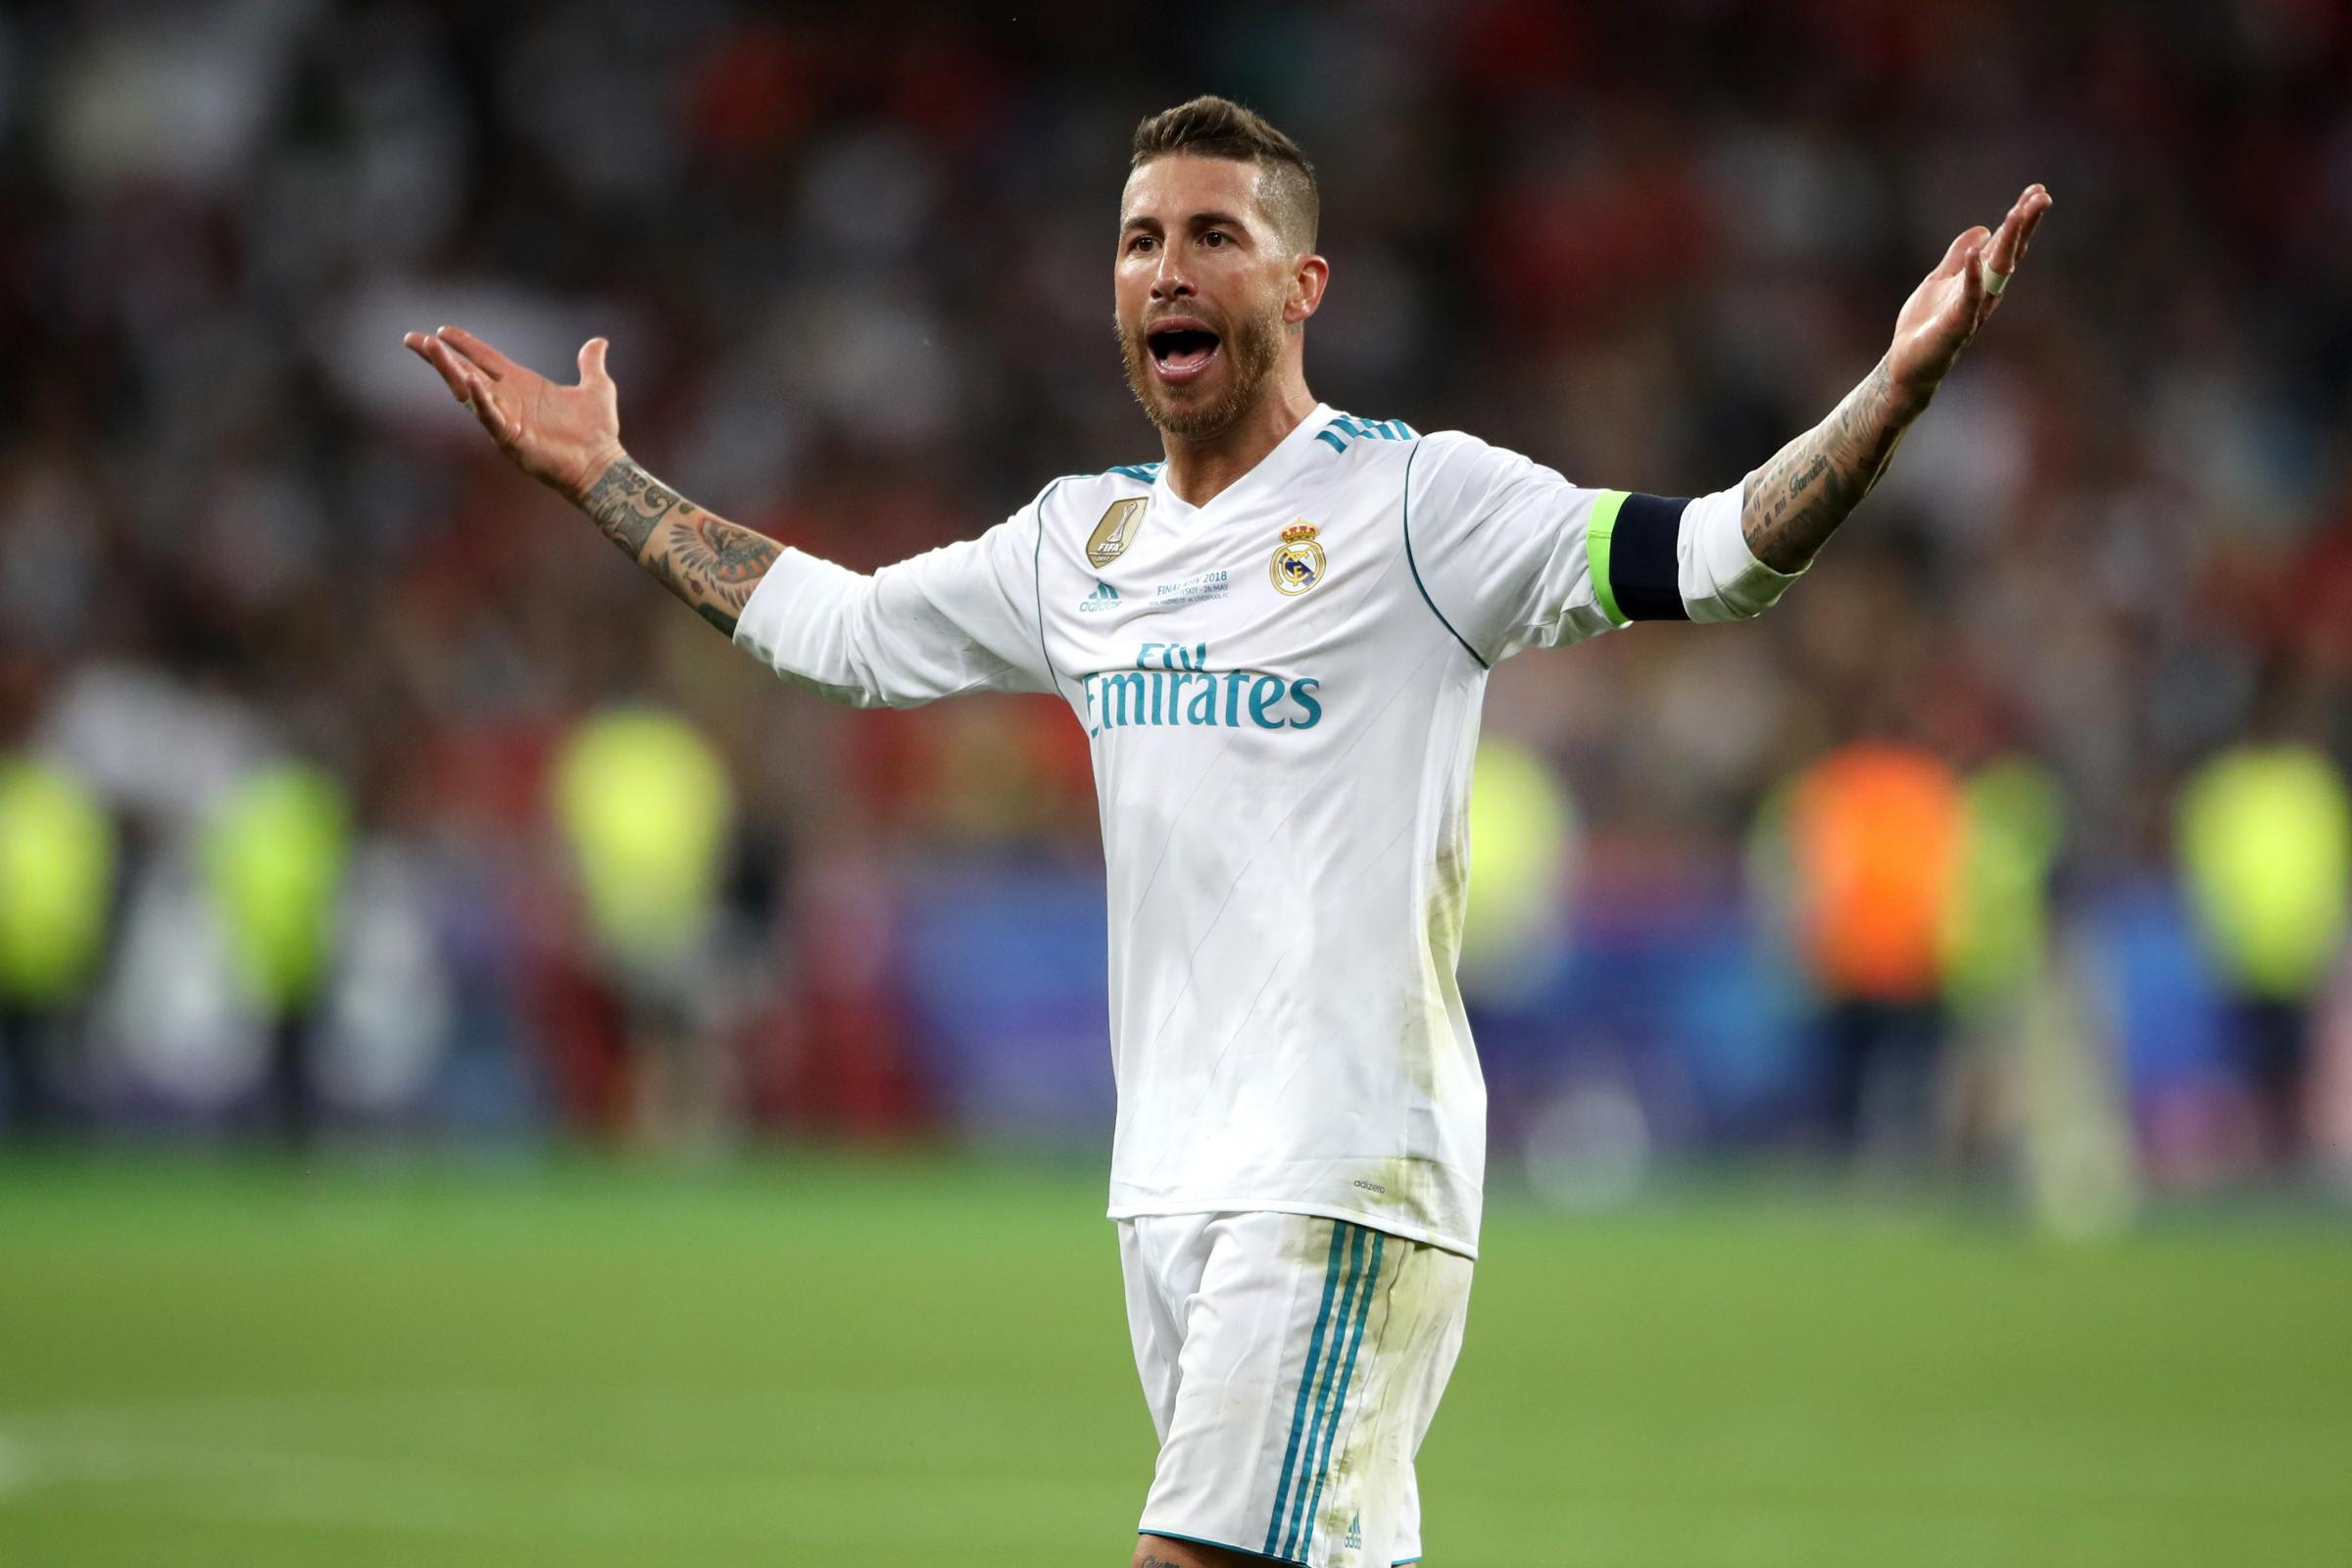 Real Madrid's Sergio Ramos has denied deliberately picking up a late yellow card against Ajax